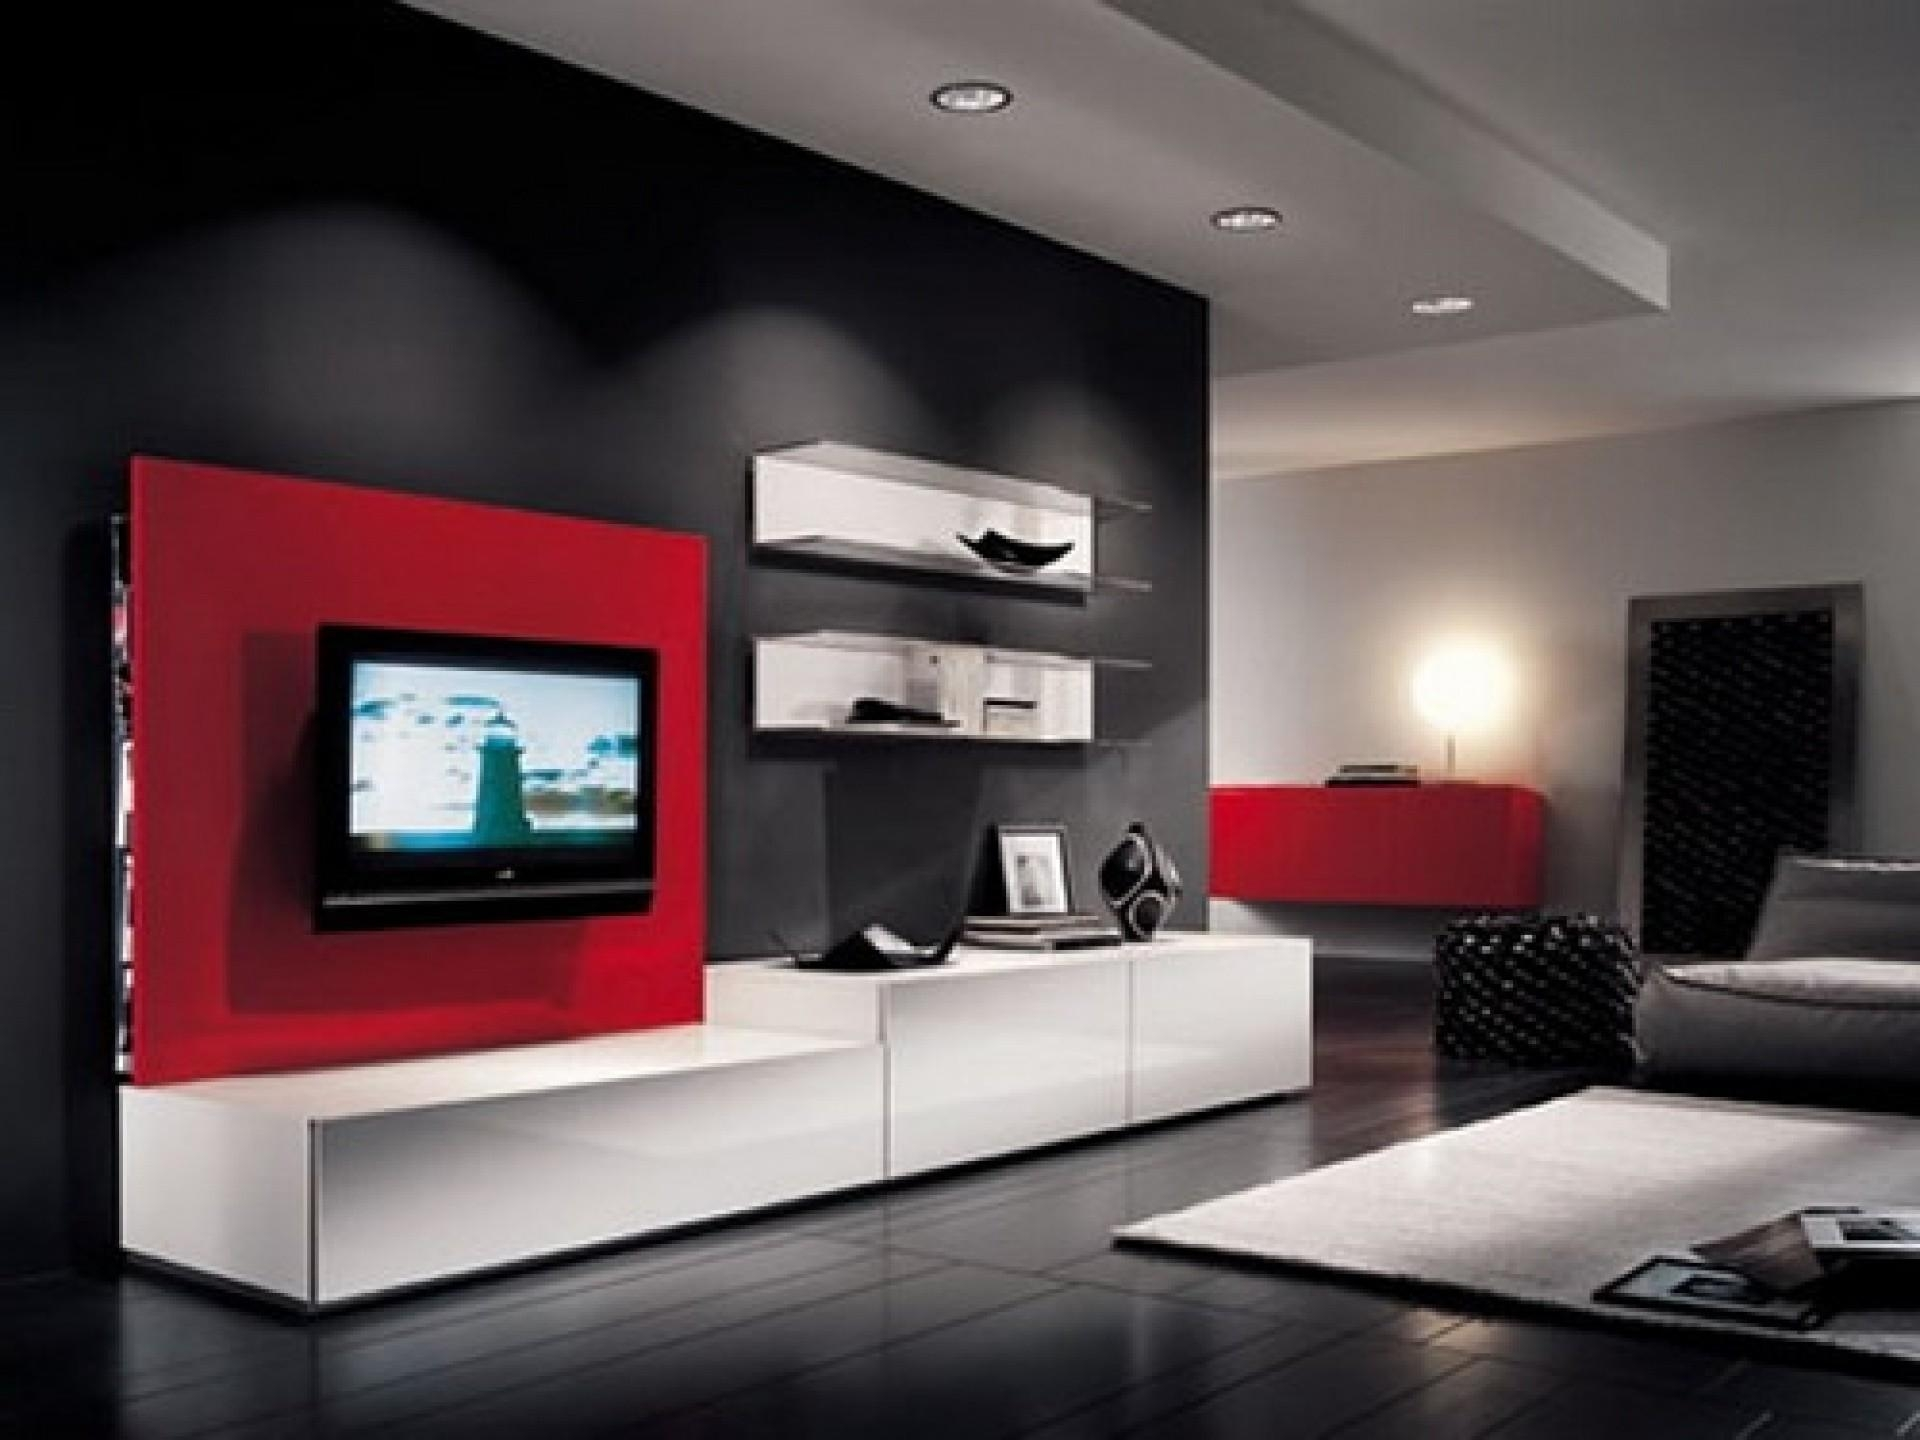 Black And White Bedroom Decor Led Tv Colorful Patterned Rugs Regarding Sofas Black And White Colors (Image 7 of 20)